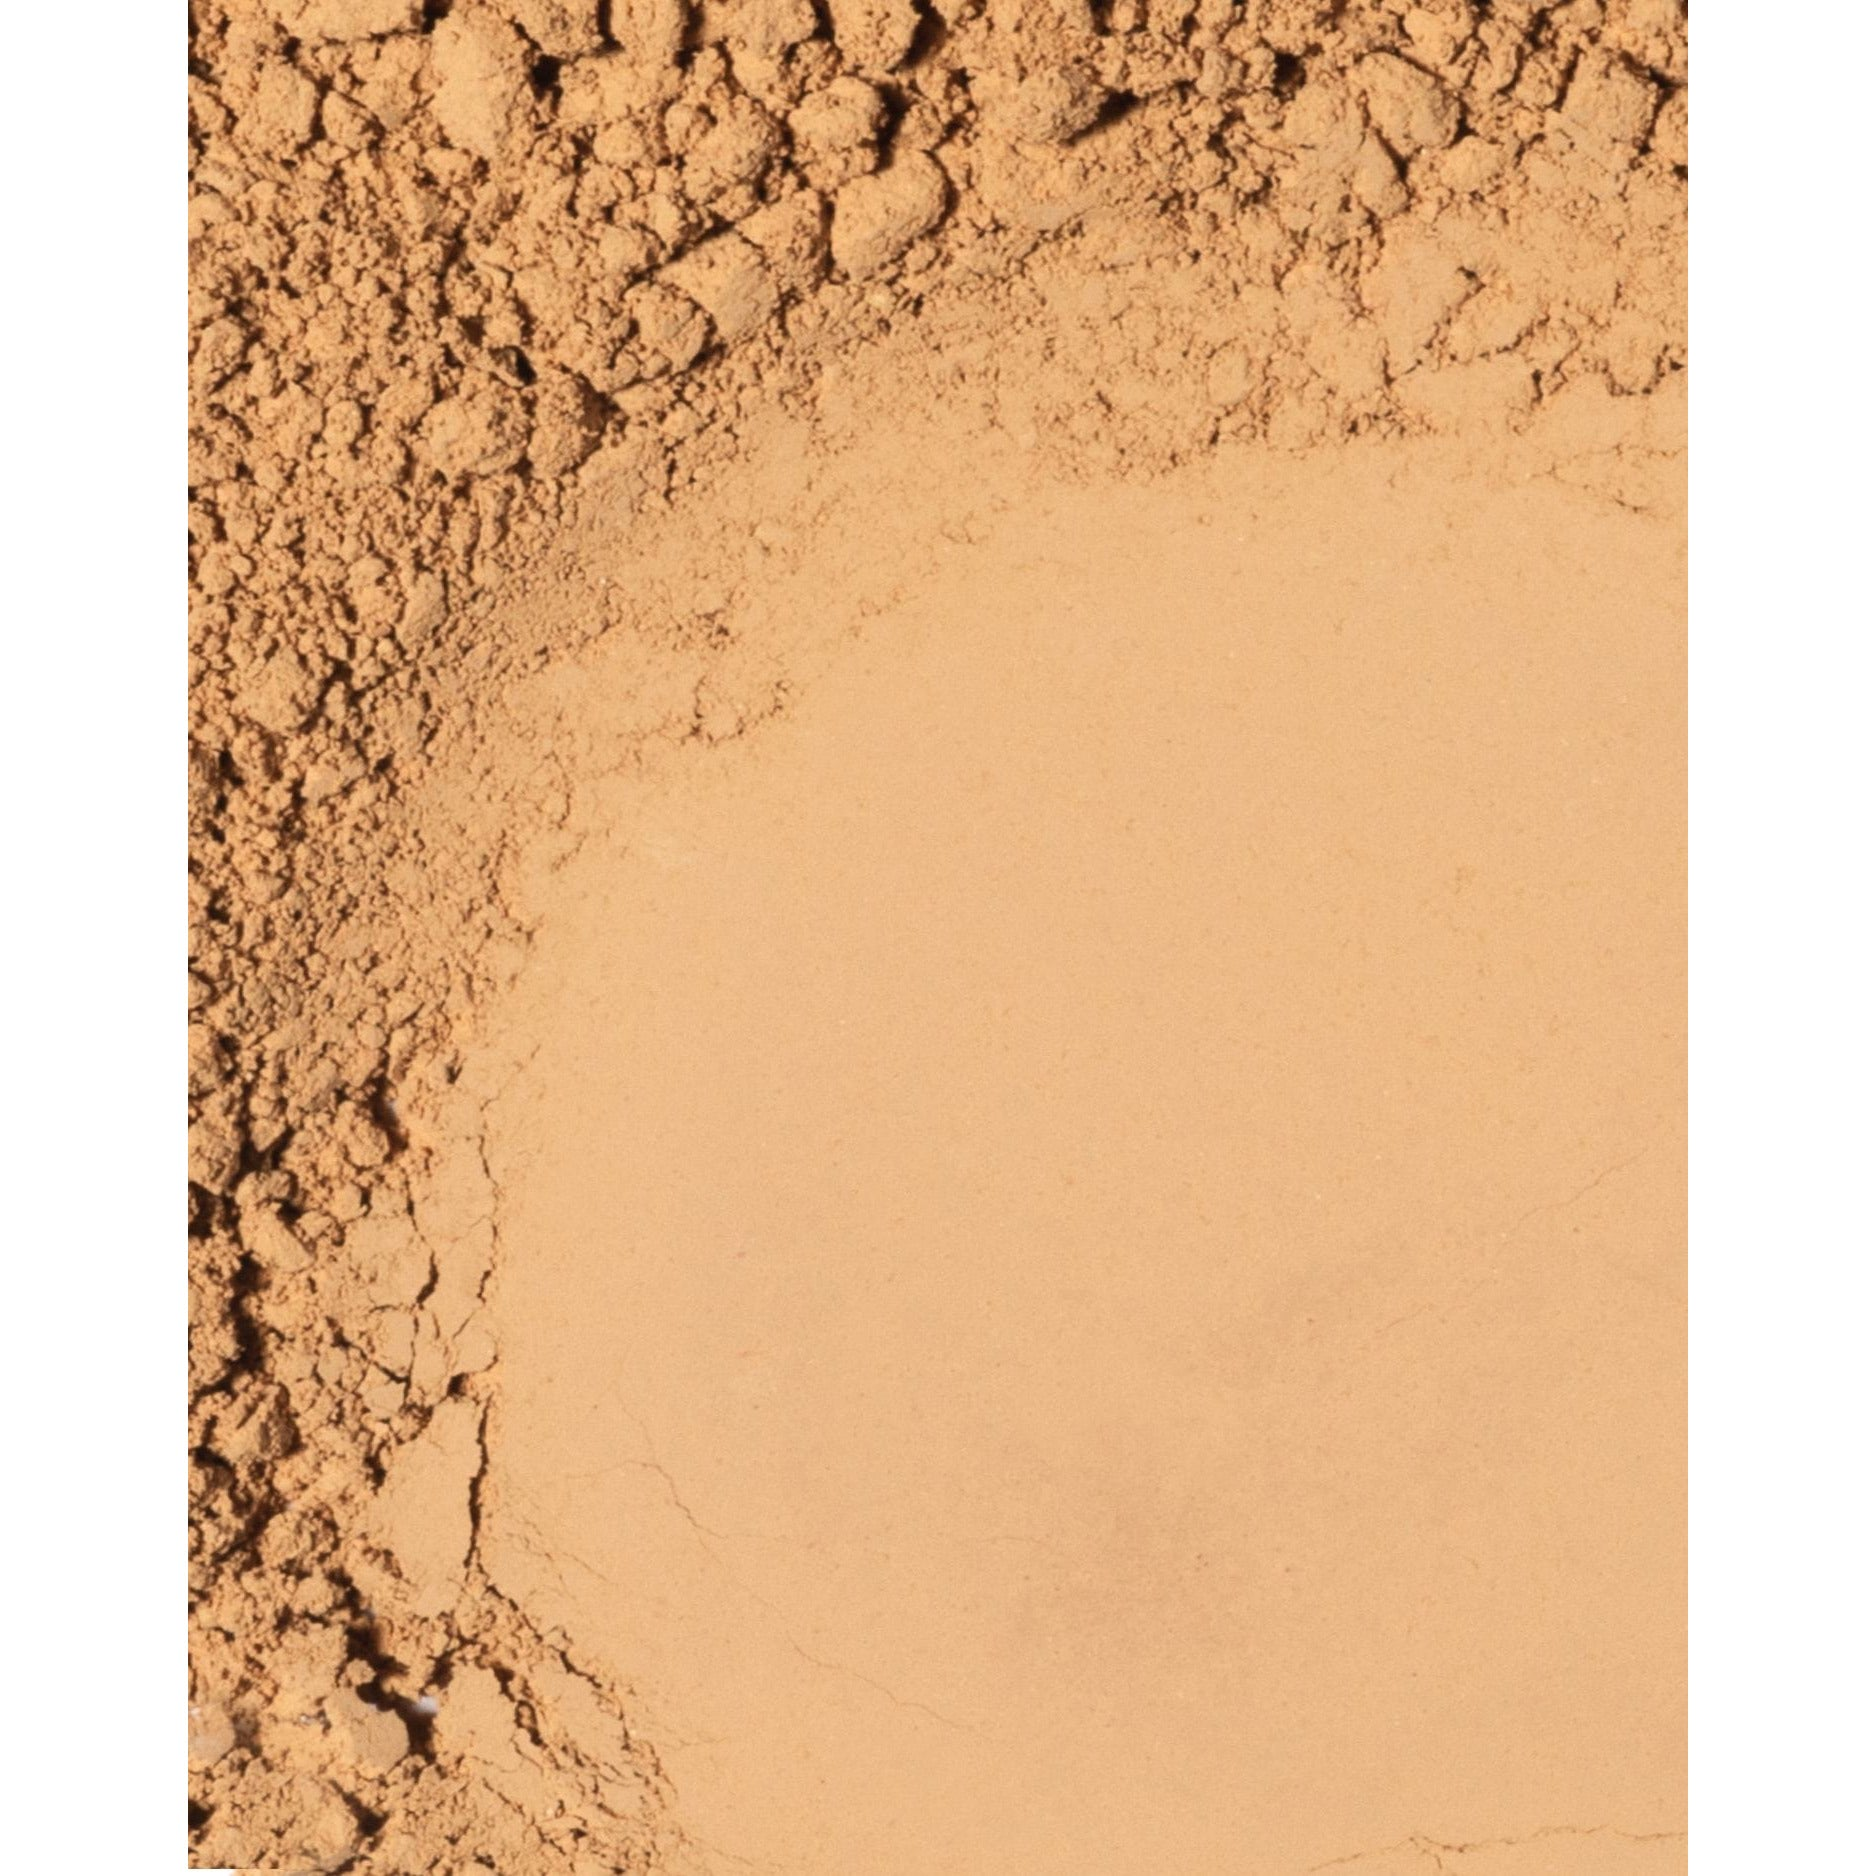 Divine - Omiana Loose Powder Mineral Foundation No Titanium Dioxide and No Mica